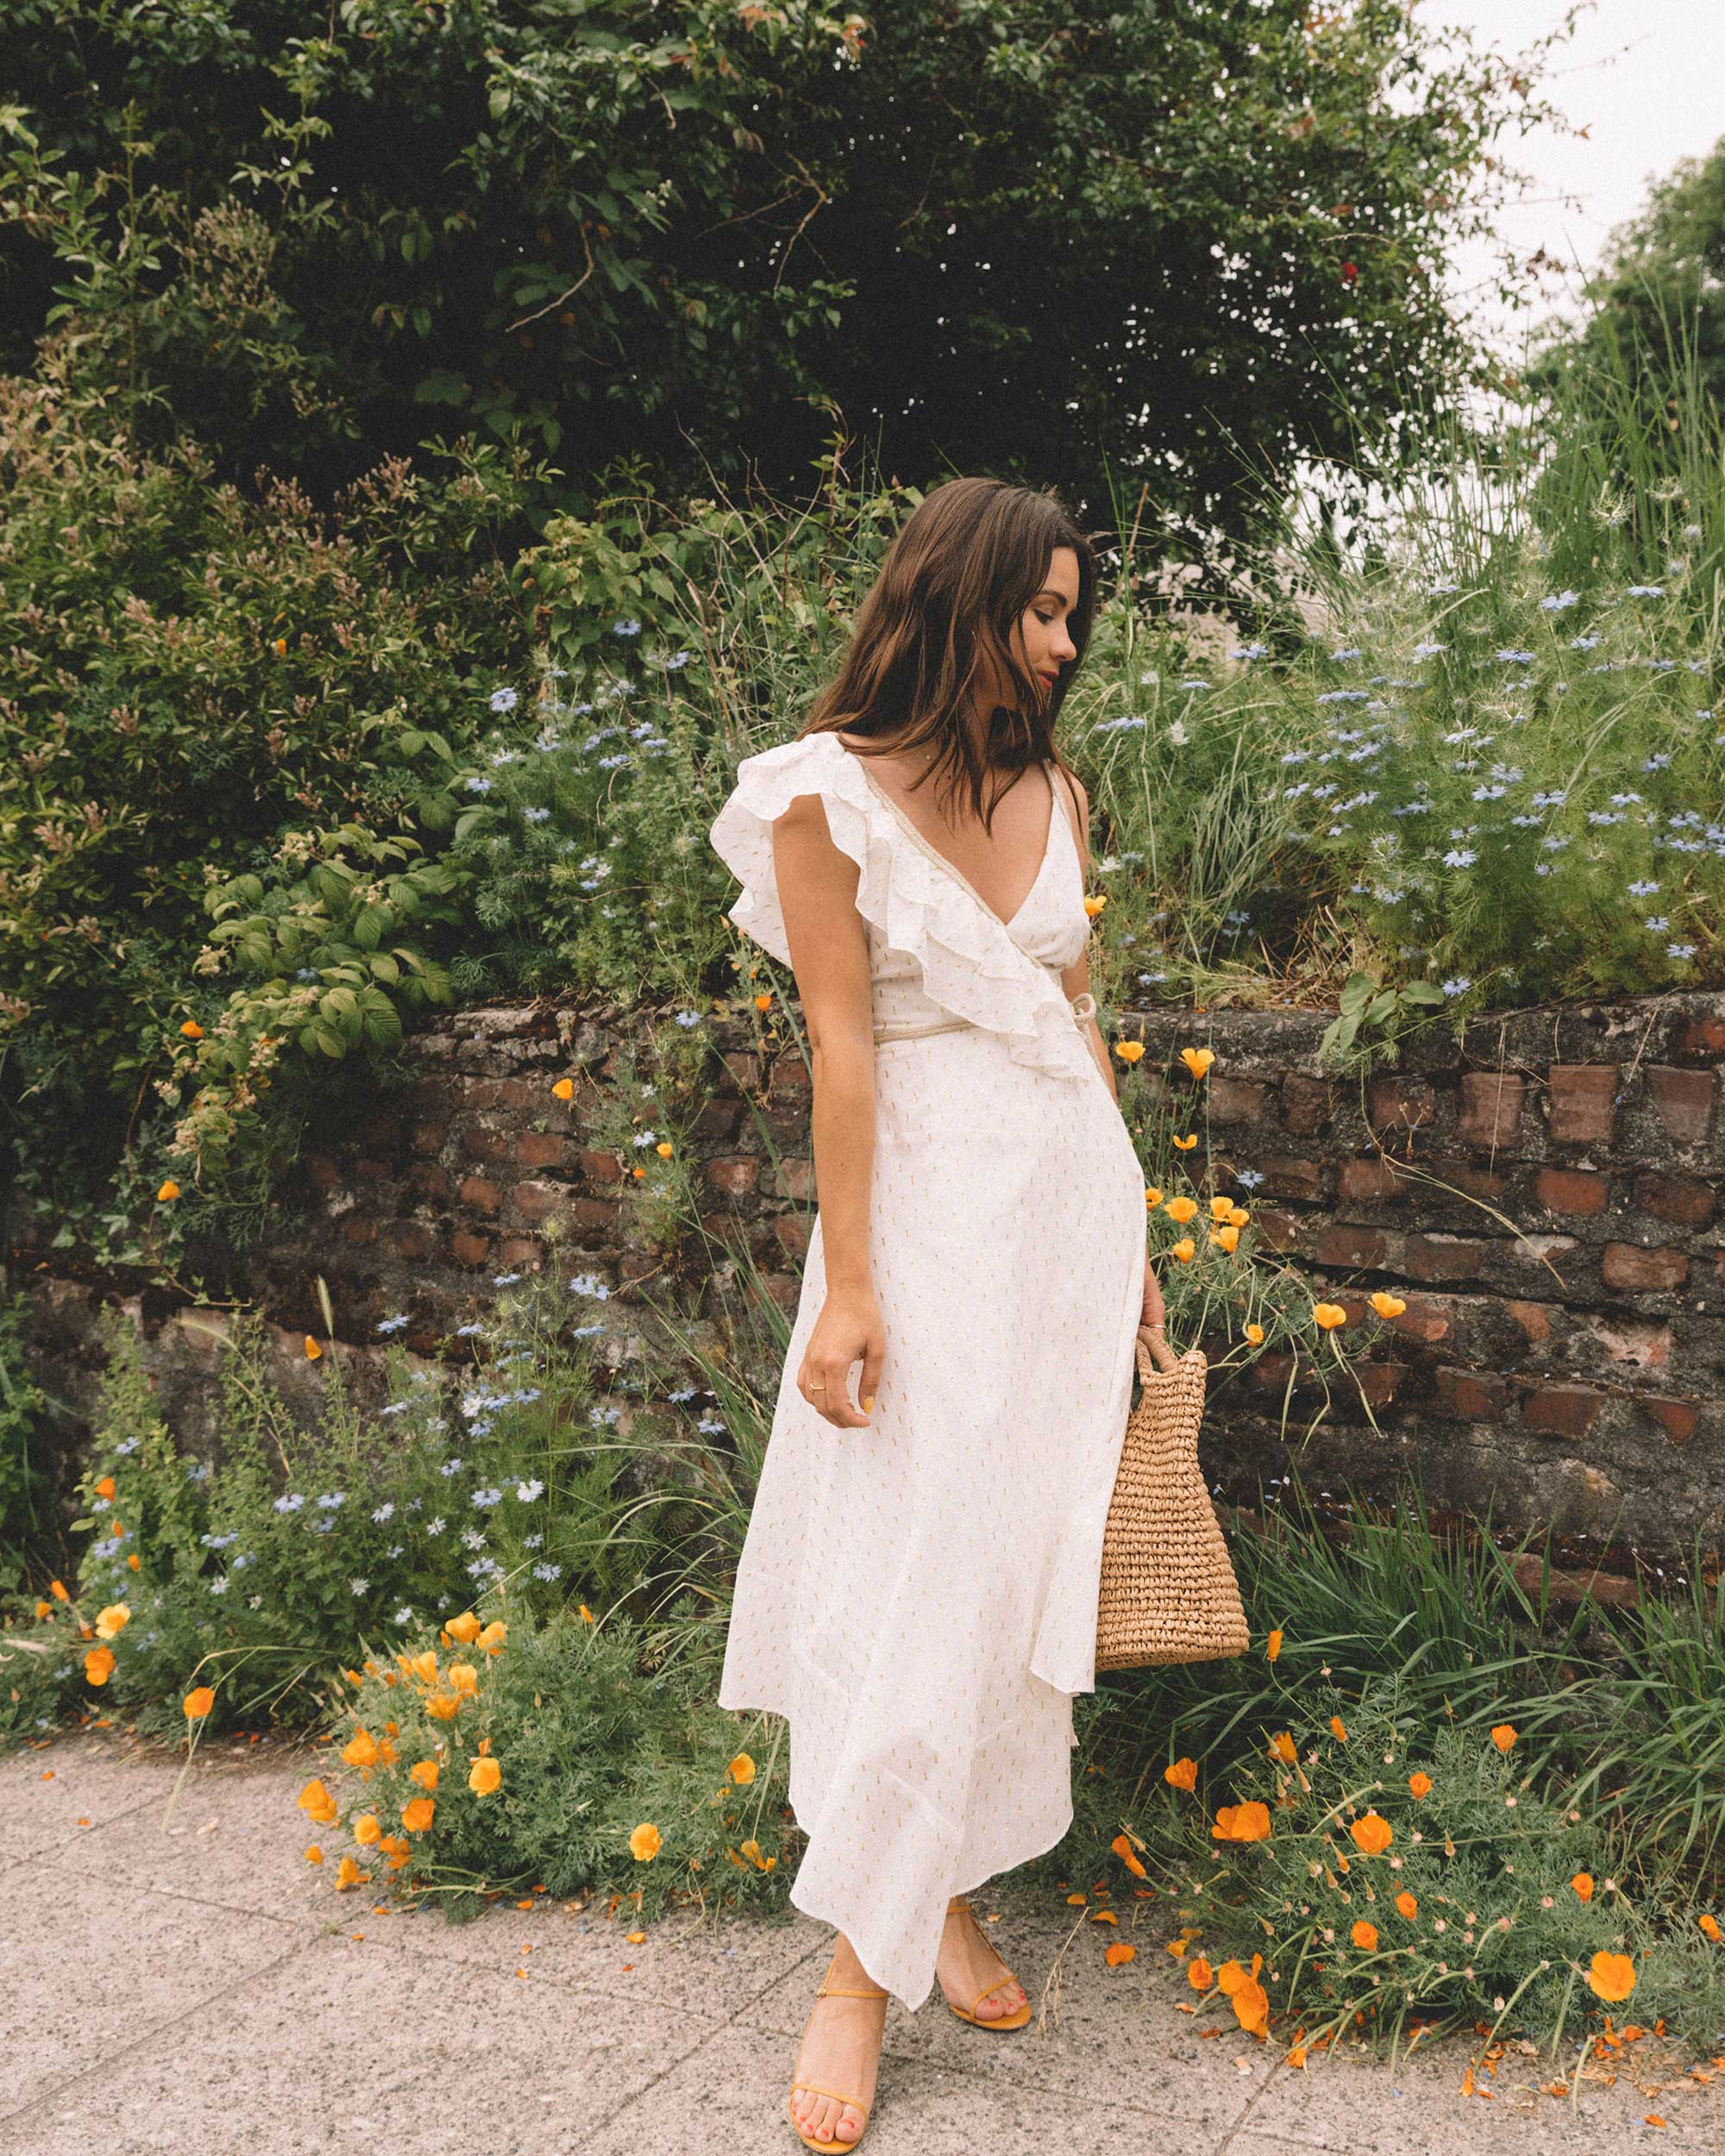 Sarah Butler of Sarah Styles Seattle wears BCBGMAXAZRIA White Asymmetric Midi Wrap Dress for the perfect summer outfit | @sarahchristine -5.jpg